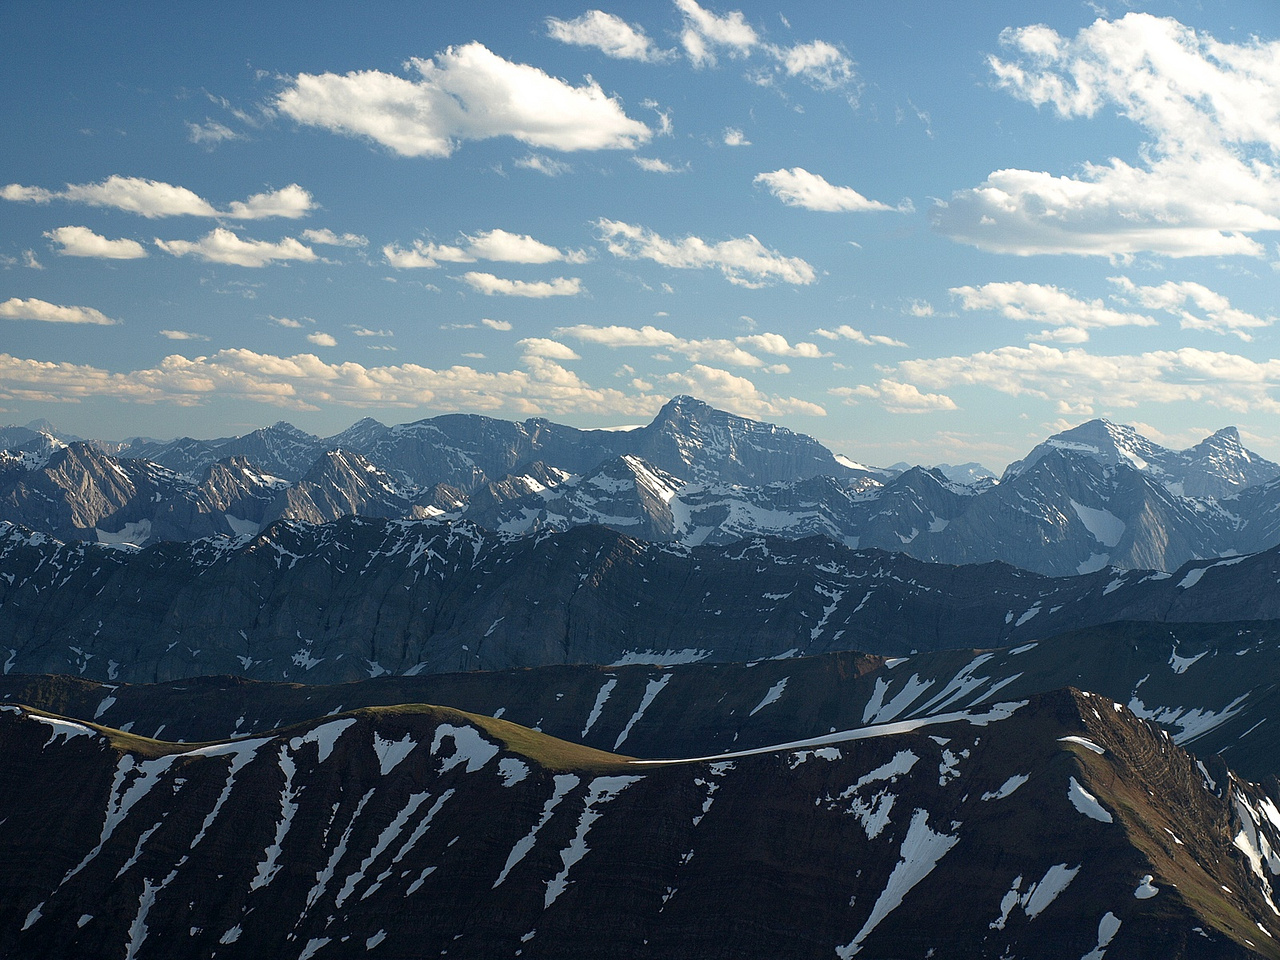 Looking over Grizzly and Highwood Ridge at Mount Joffre.